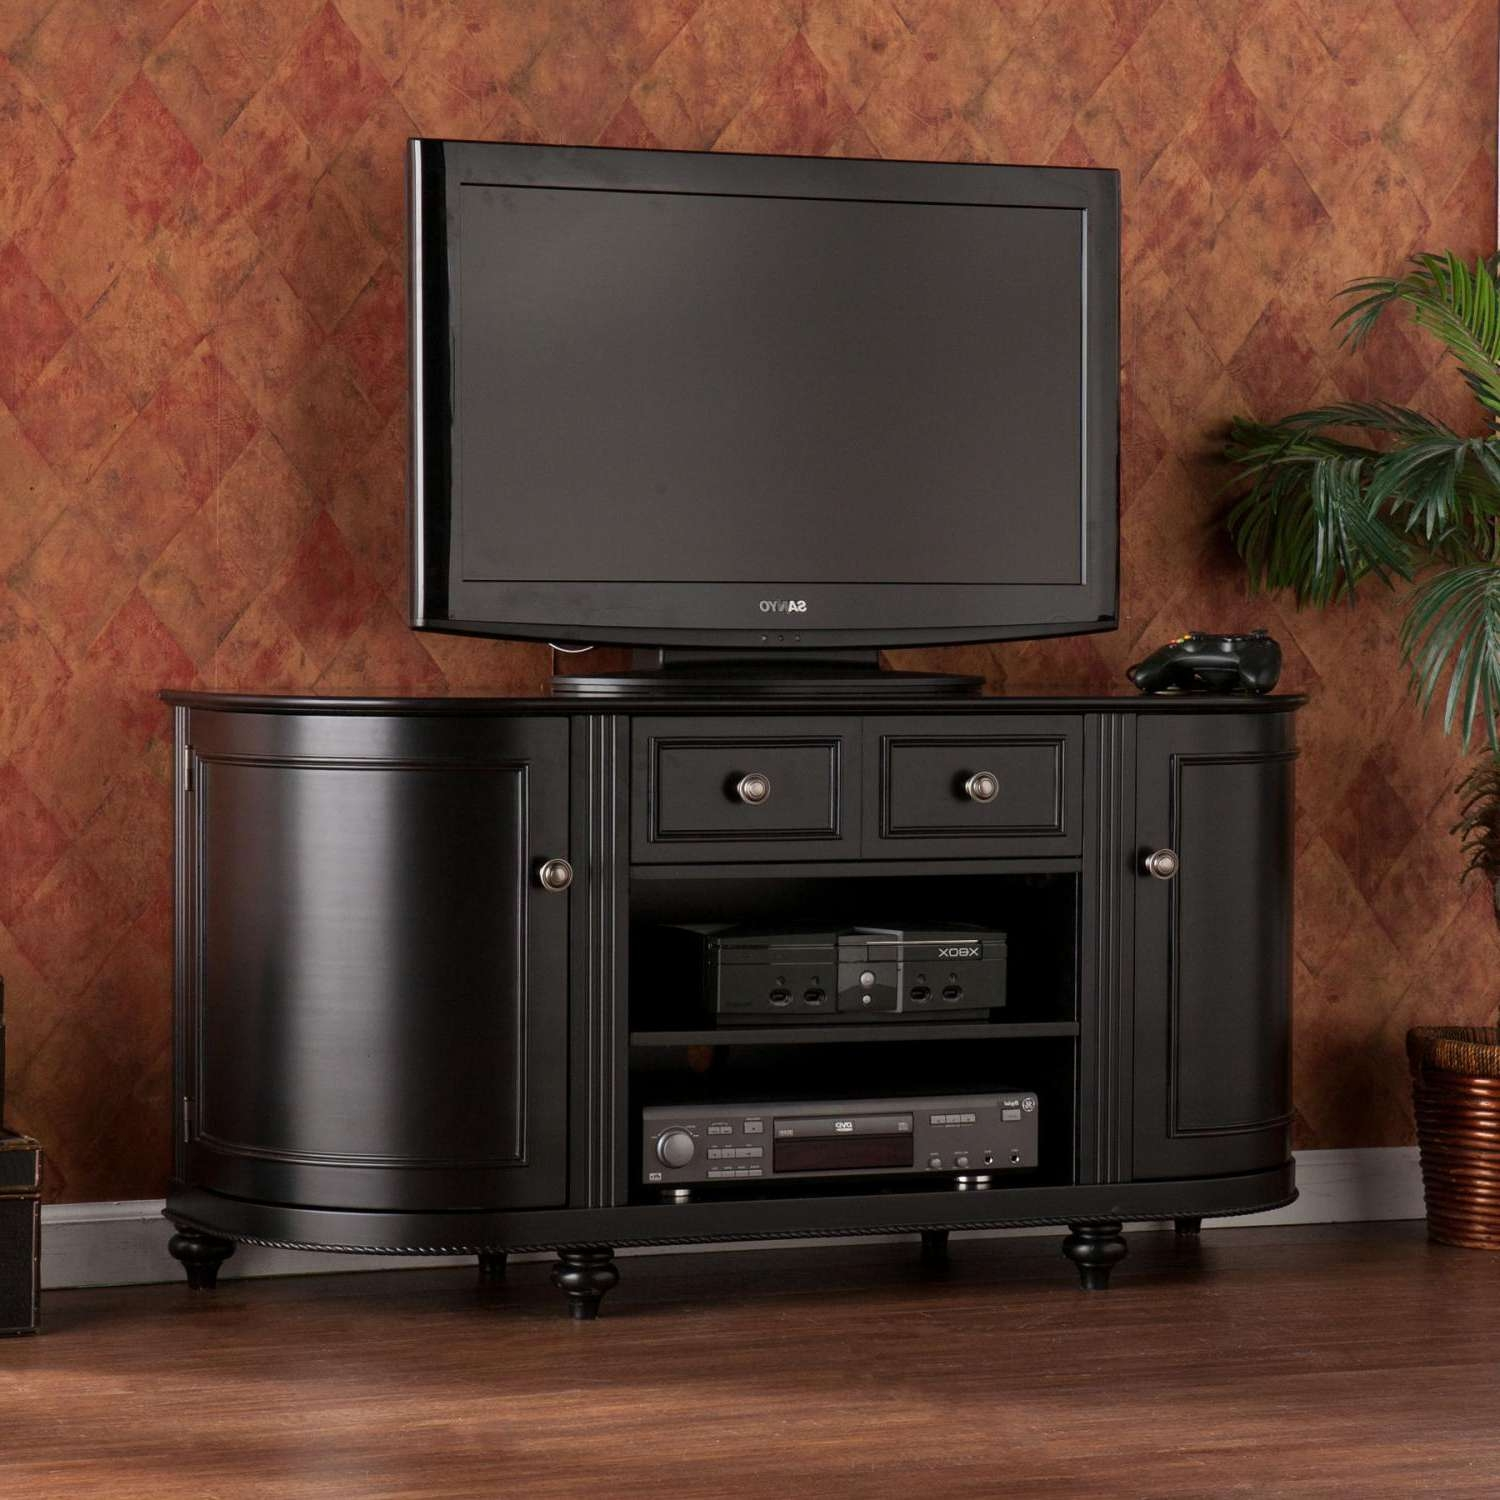 Led/lcd Tv Stand For Up To 58 Inch Plasma, Dlp And Led/lcd Tvs Throughout Tv Stands For Large Tvs (View 5 of 15)